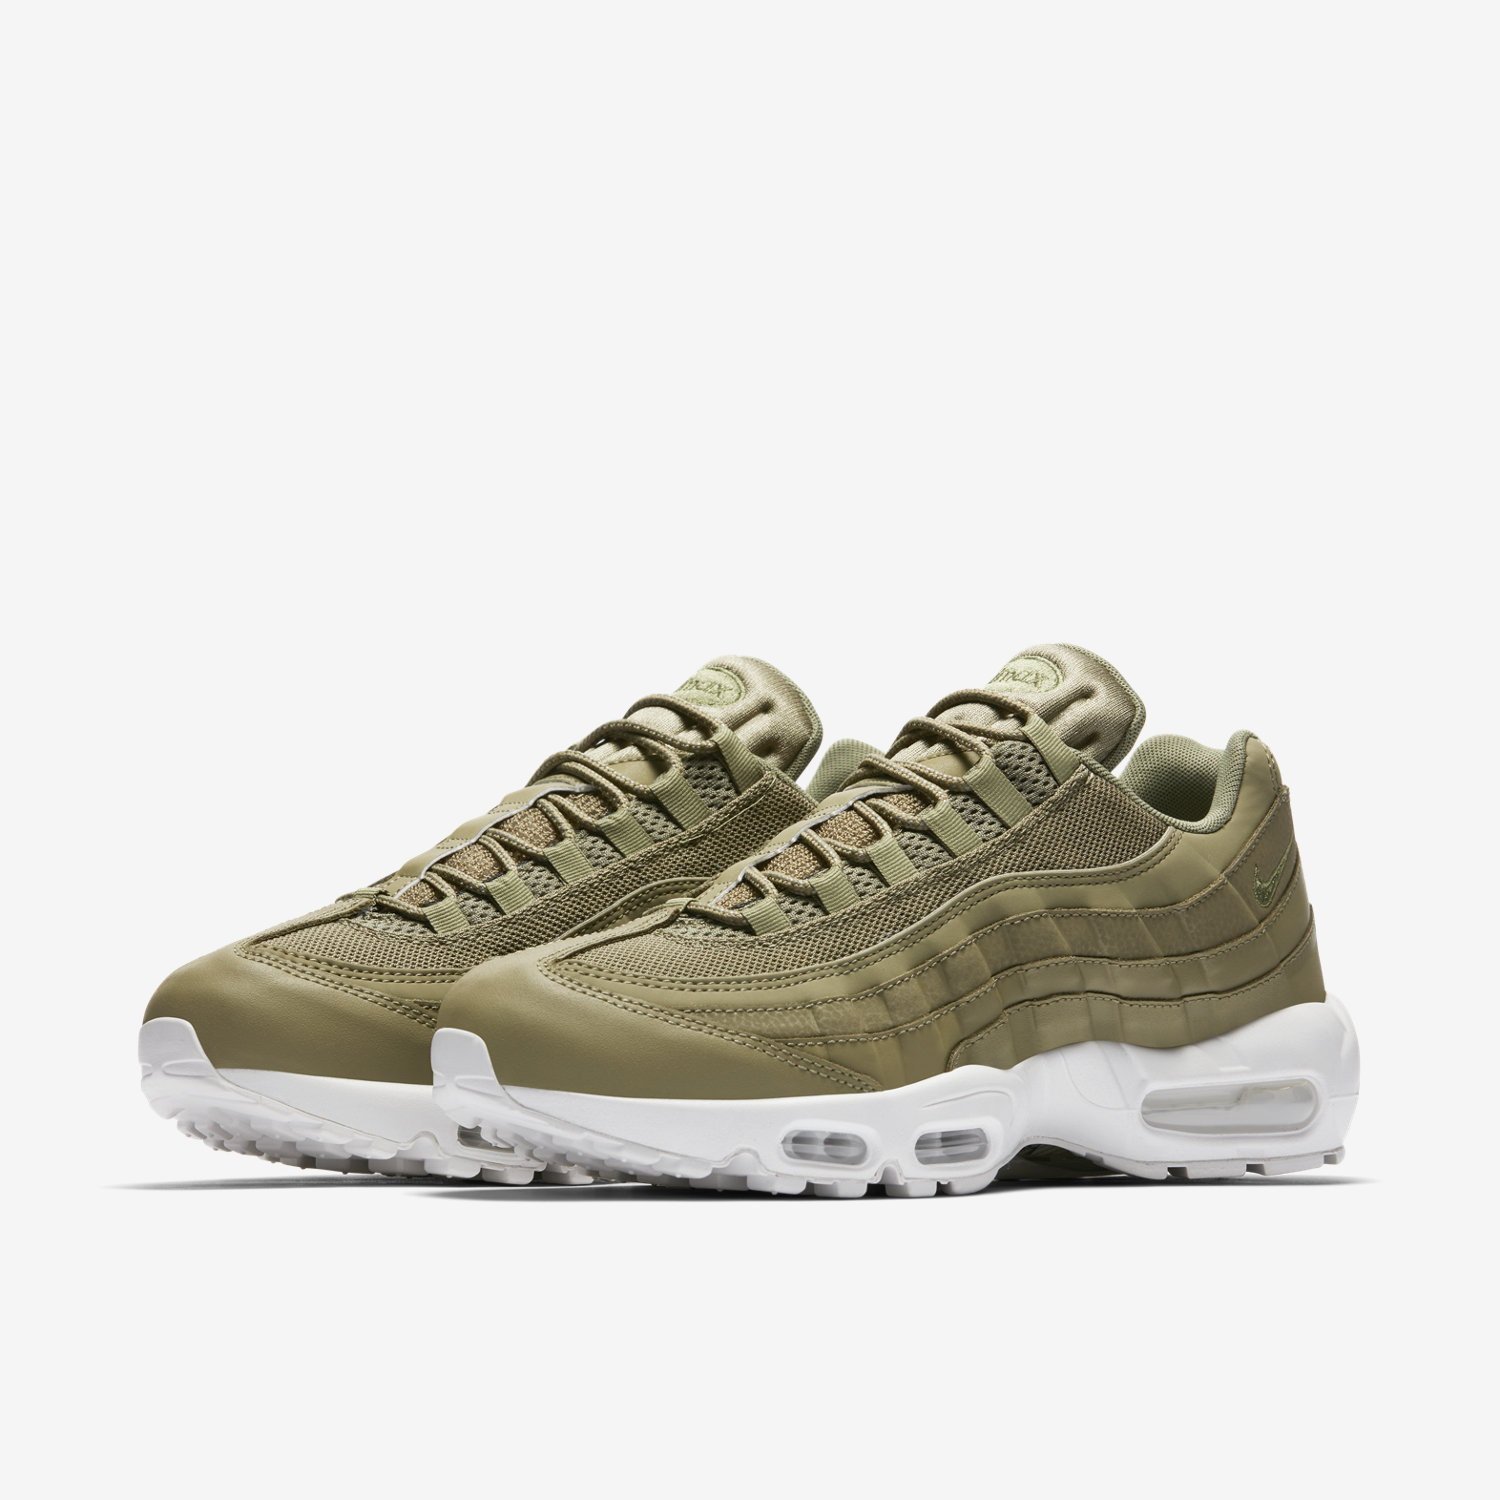 #airmax95 Twitter Search